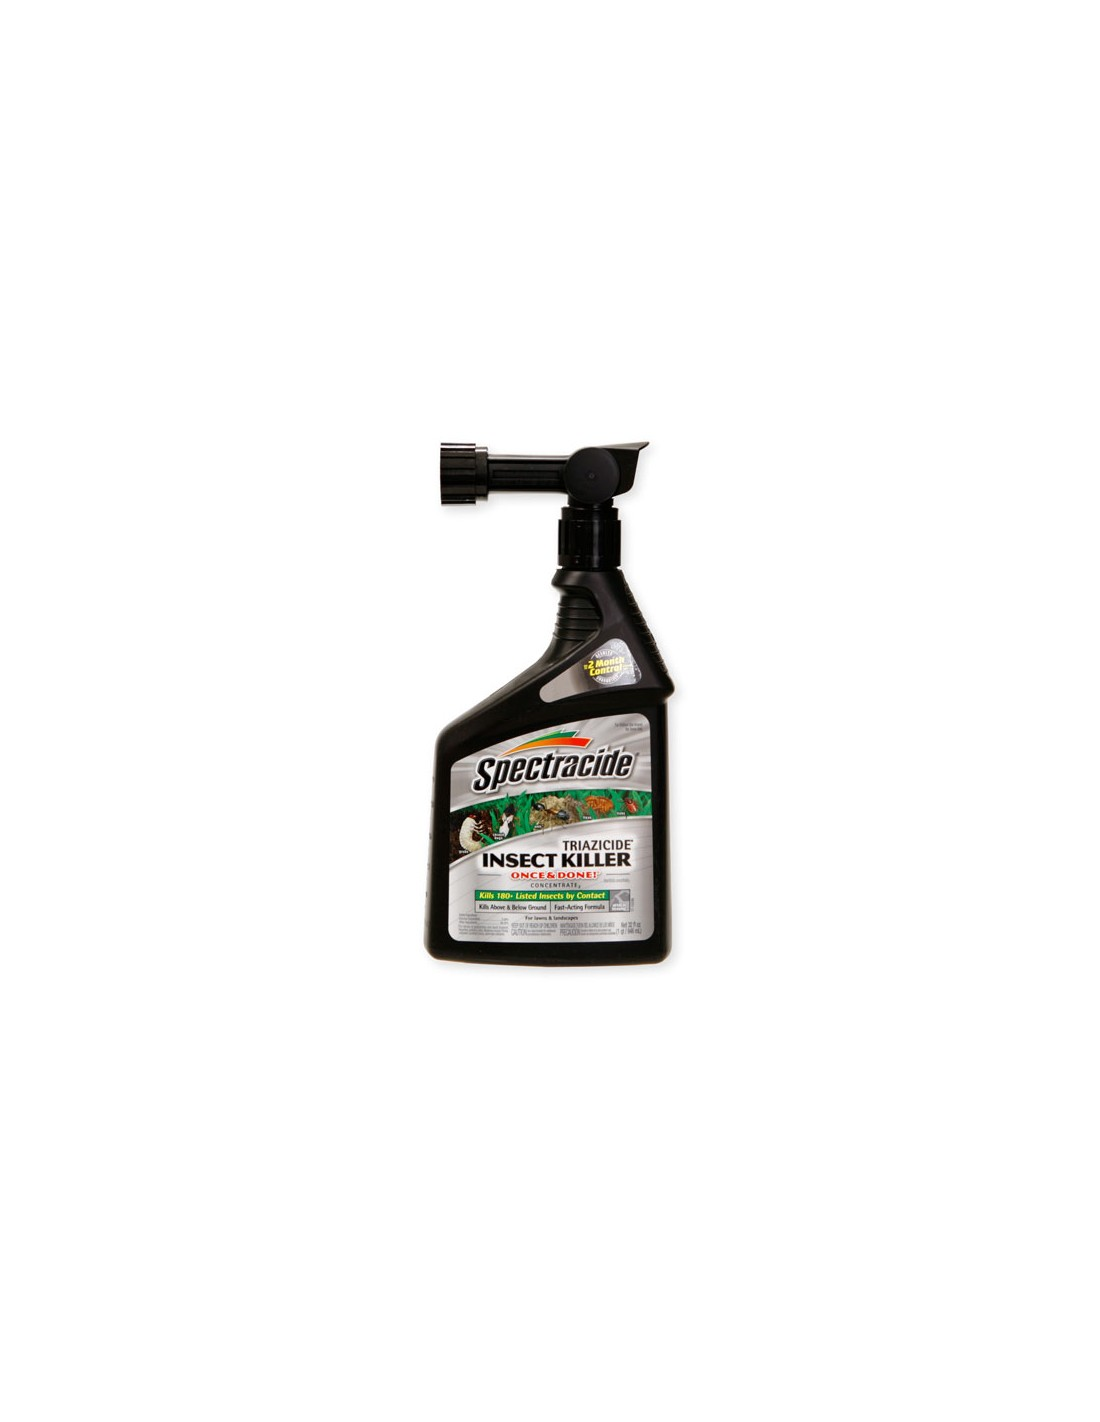 Does Triazicide kill fleas and how often should I apply it to my yard?